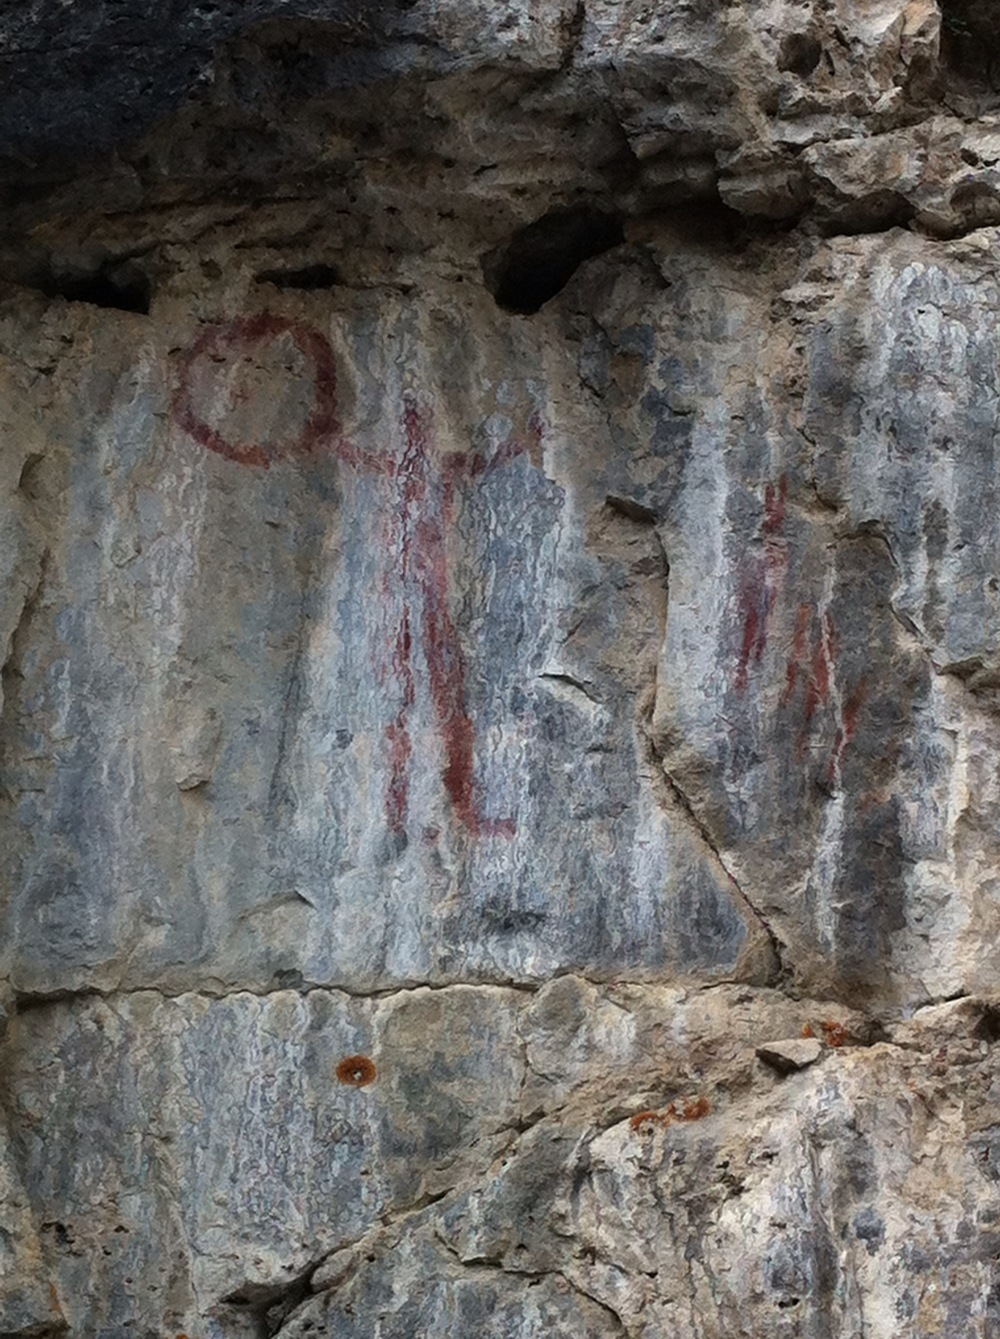 This is the better of the two petroglyph images.  There was lots of speculation about how it got there and who did it by the people looking at it.  To me it looks like a drum dancer.